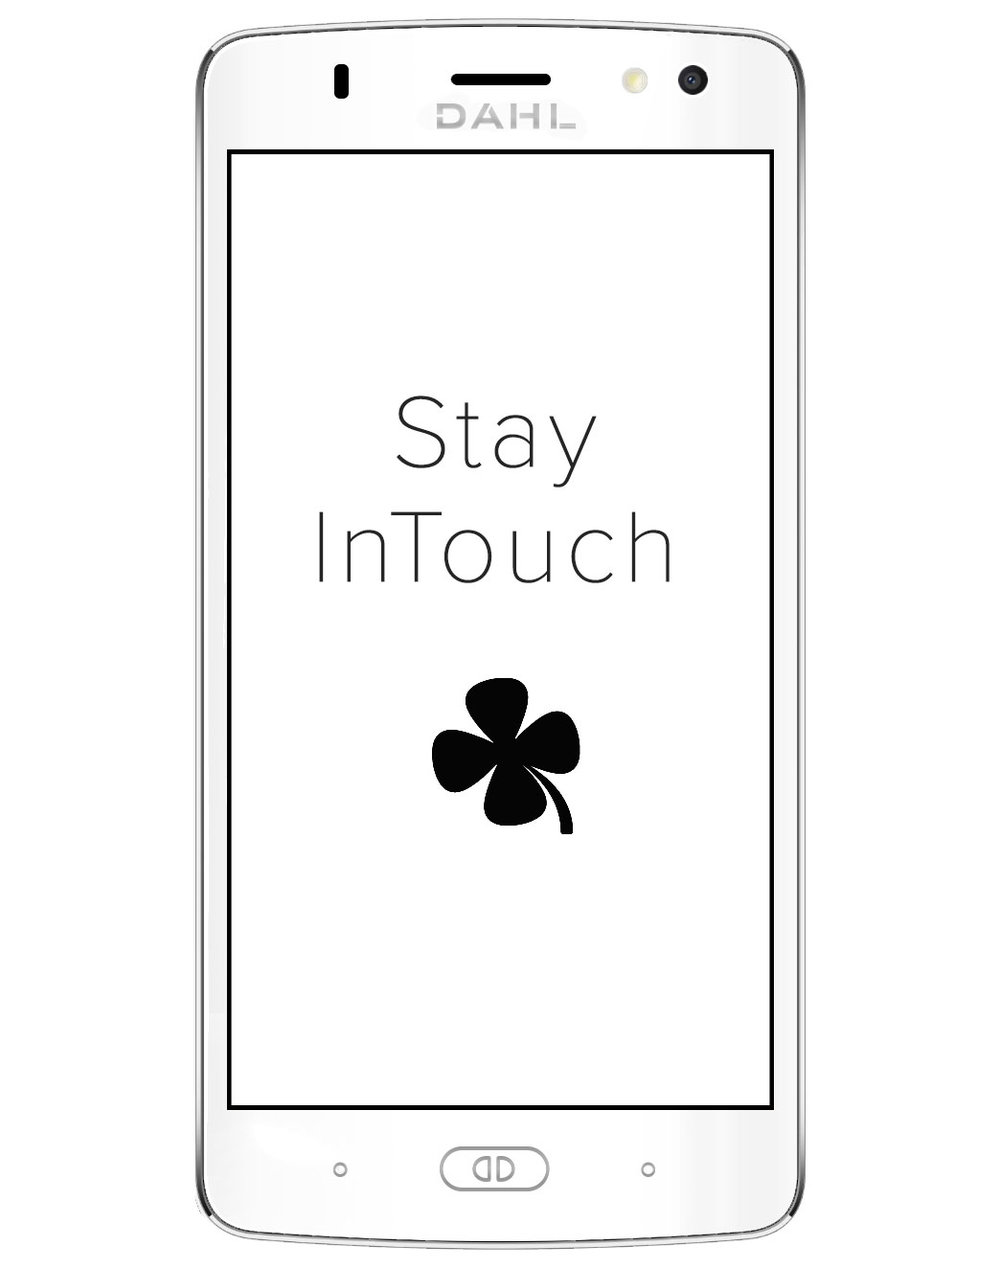 InTouch-P4G---Squarespace-white-color-(2).jpg